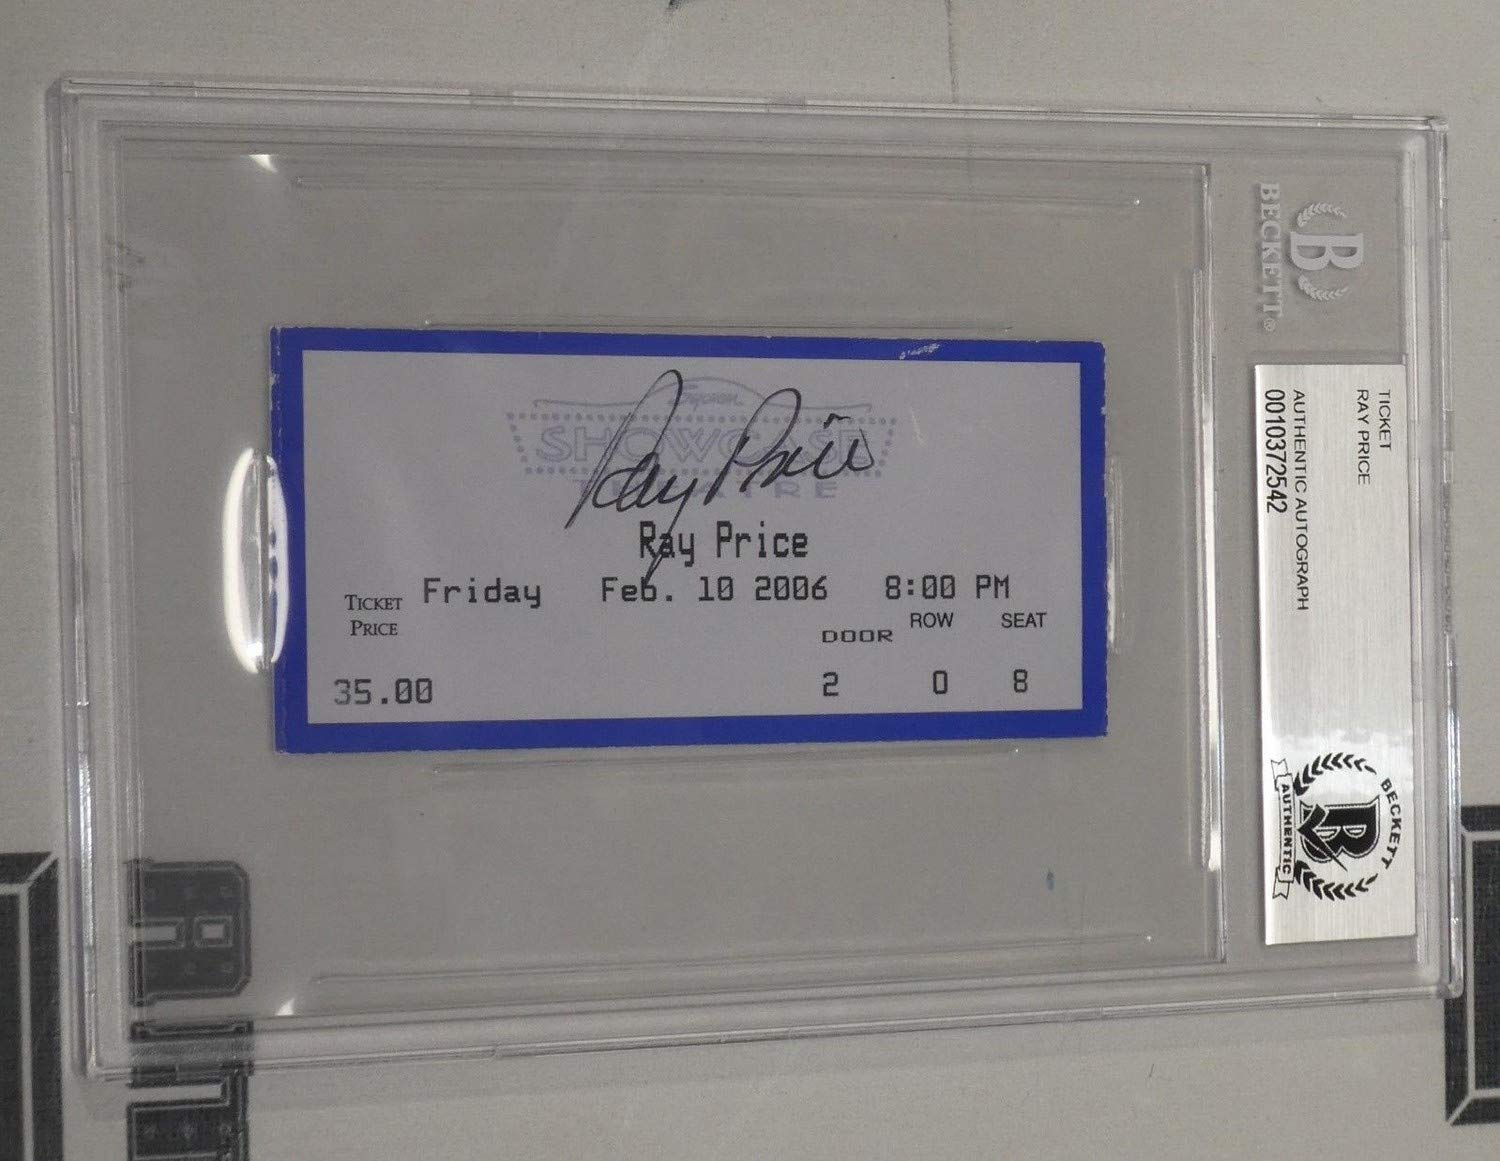 Ray Price Autographed Signed '06 Concert Ticket Beckett Authentic For The Good Times Autographed Signed